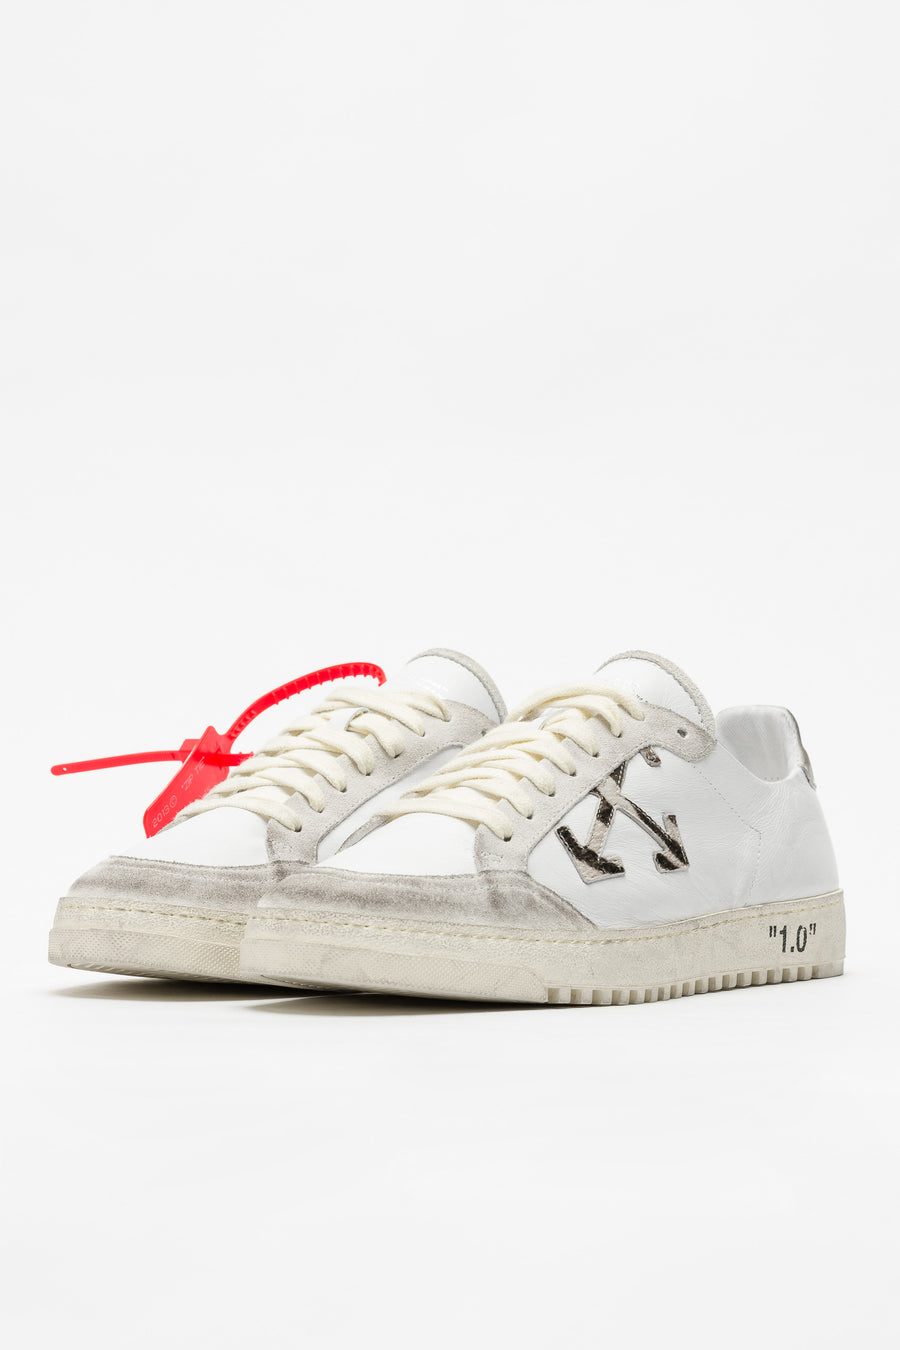 Off-White 2.0 Sneaker in White - Notre